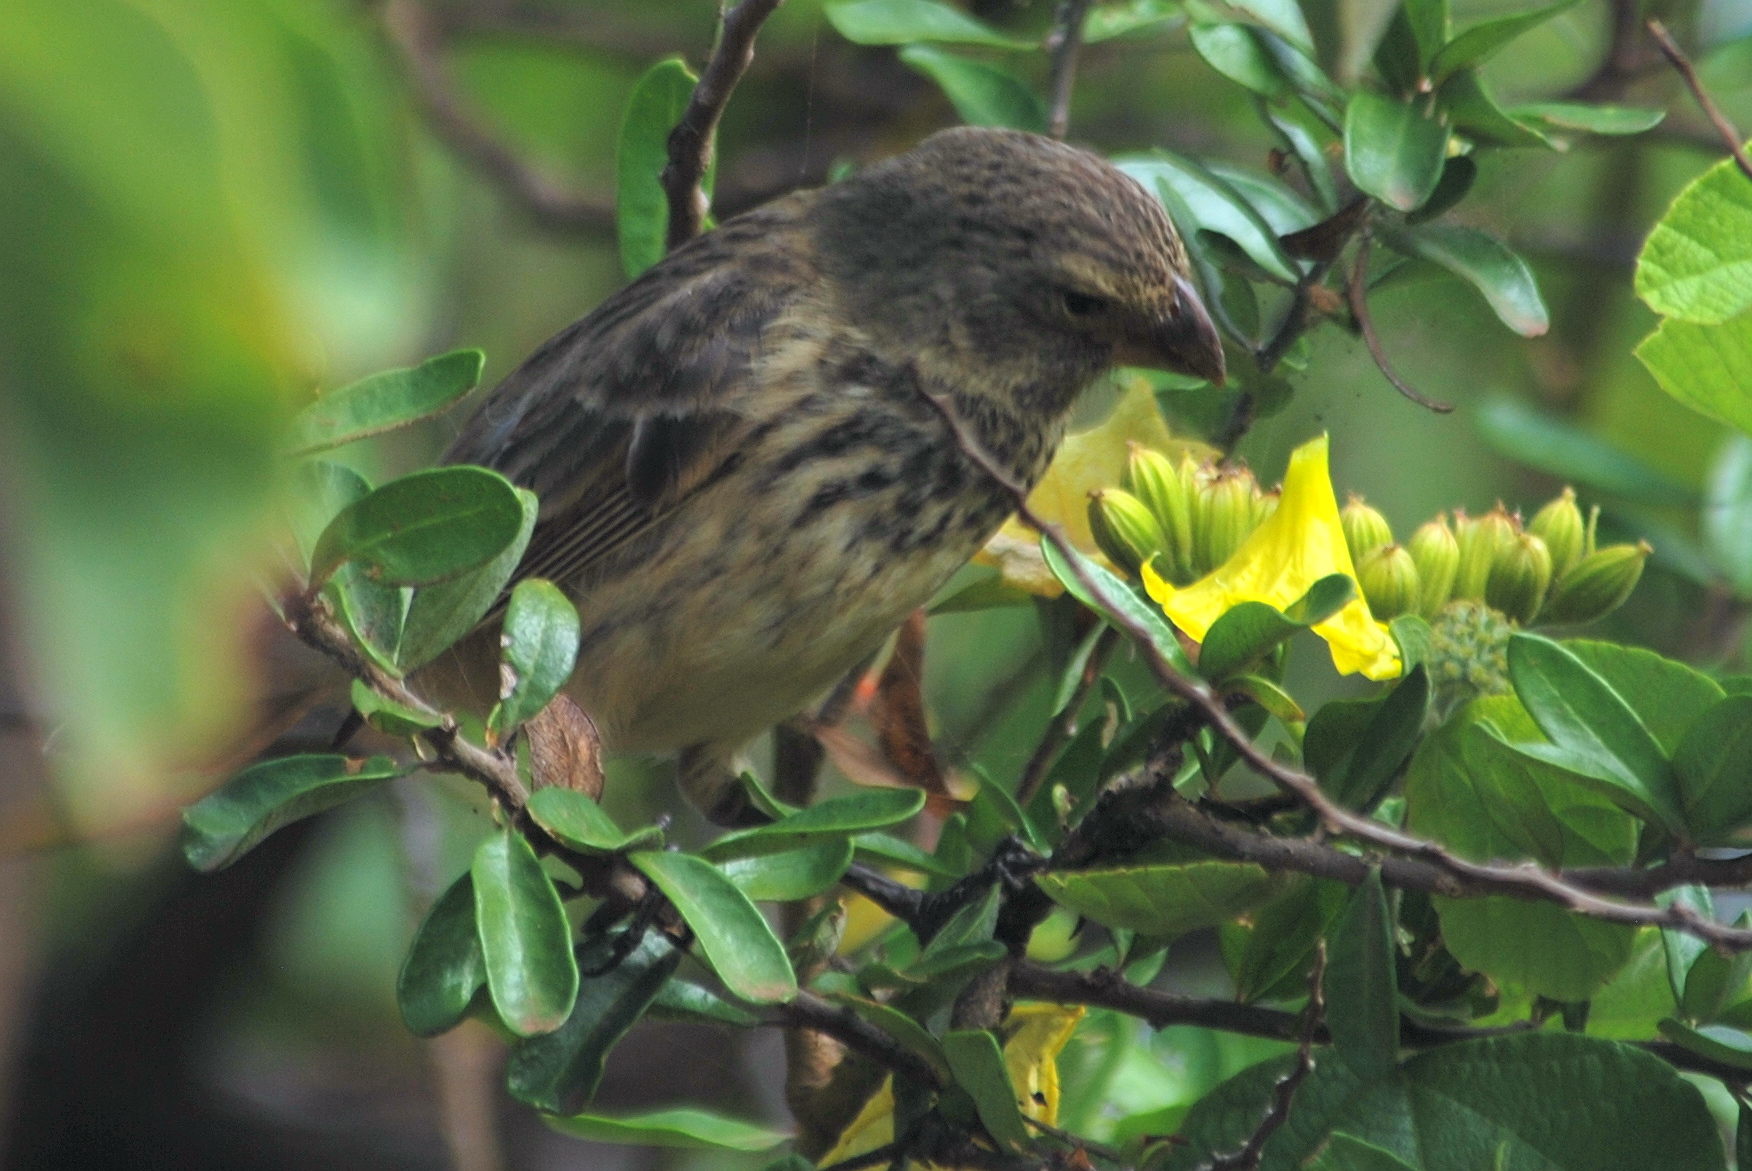 Darwin's Finches and Natural Selection in the Galapagos